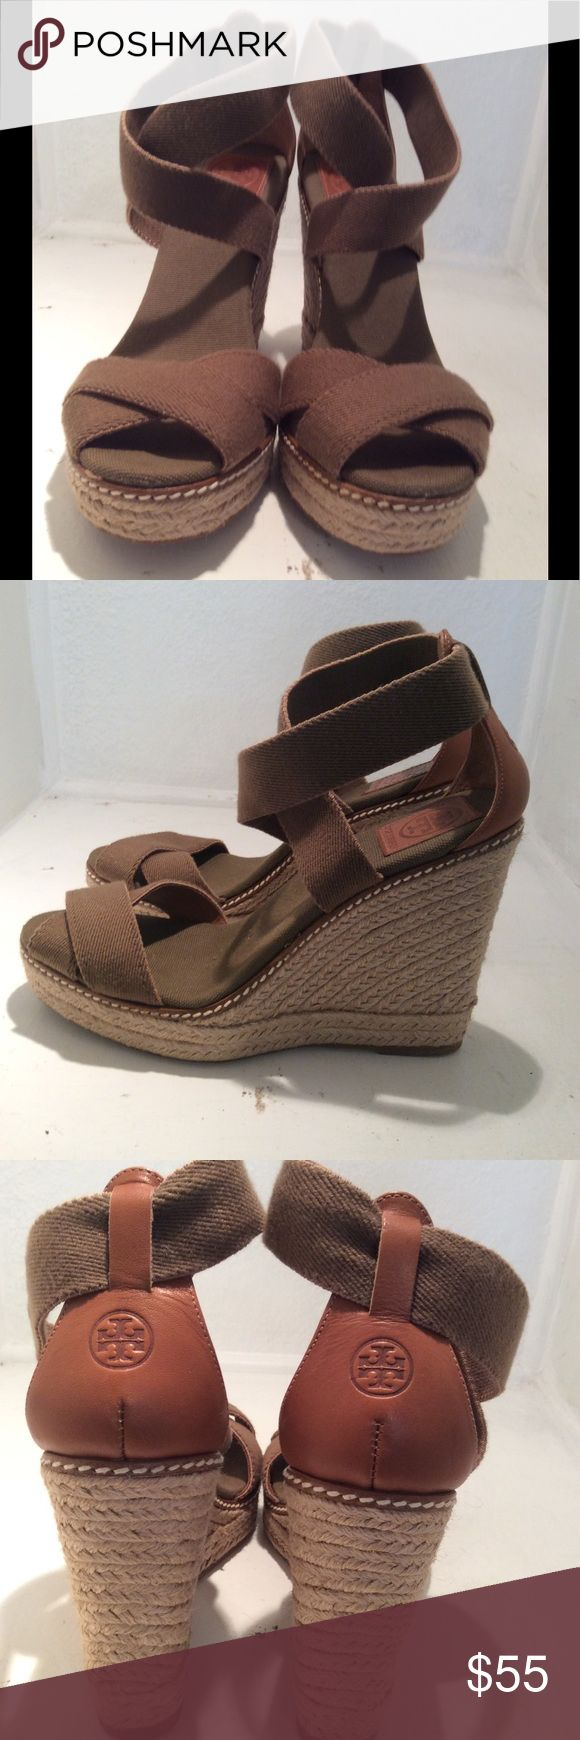 Tory Burch wedge. Size 9